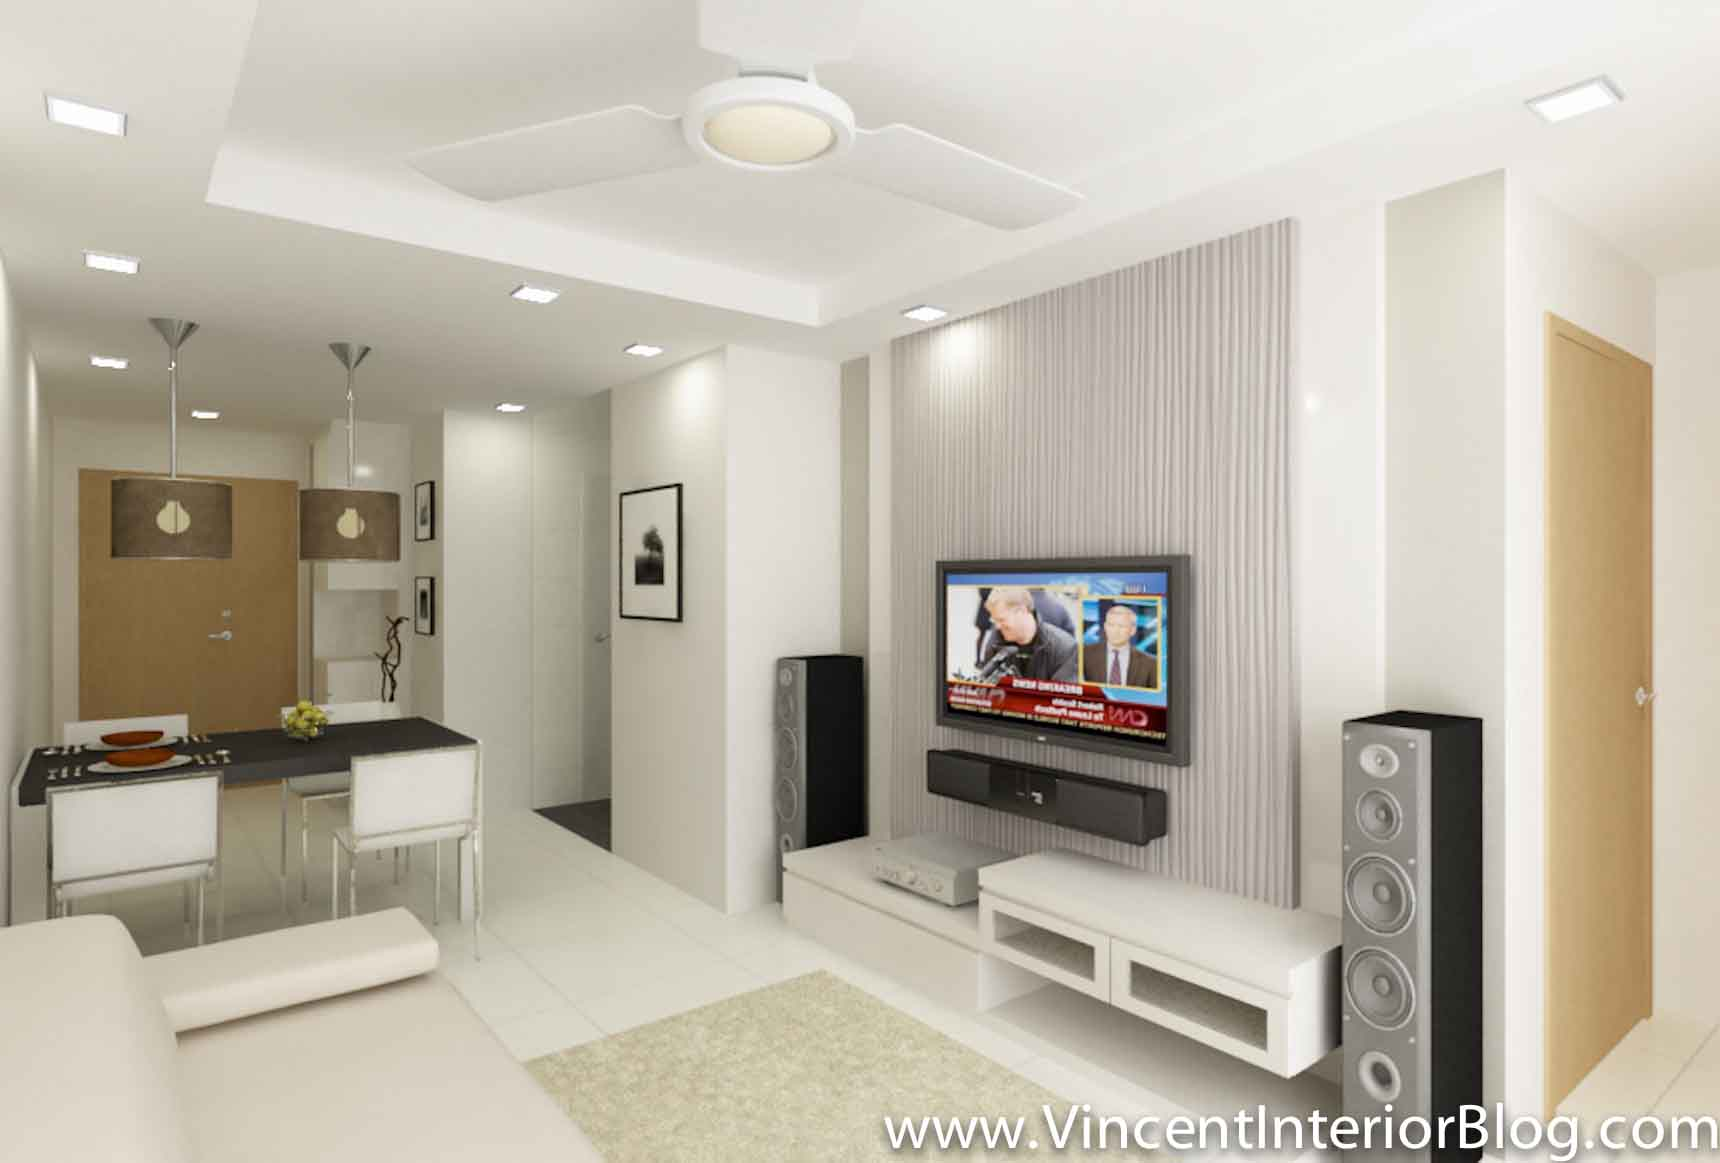 Bto 3 room hdb renovation by interior designer ben ng for Interior design for 5 room hdb flat